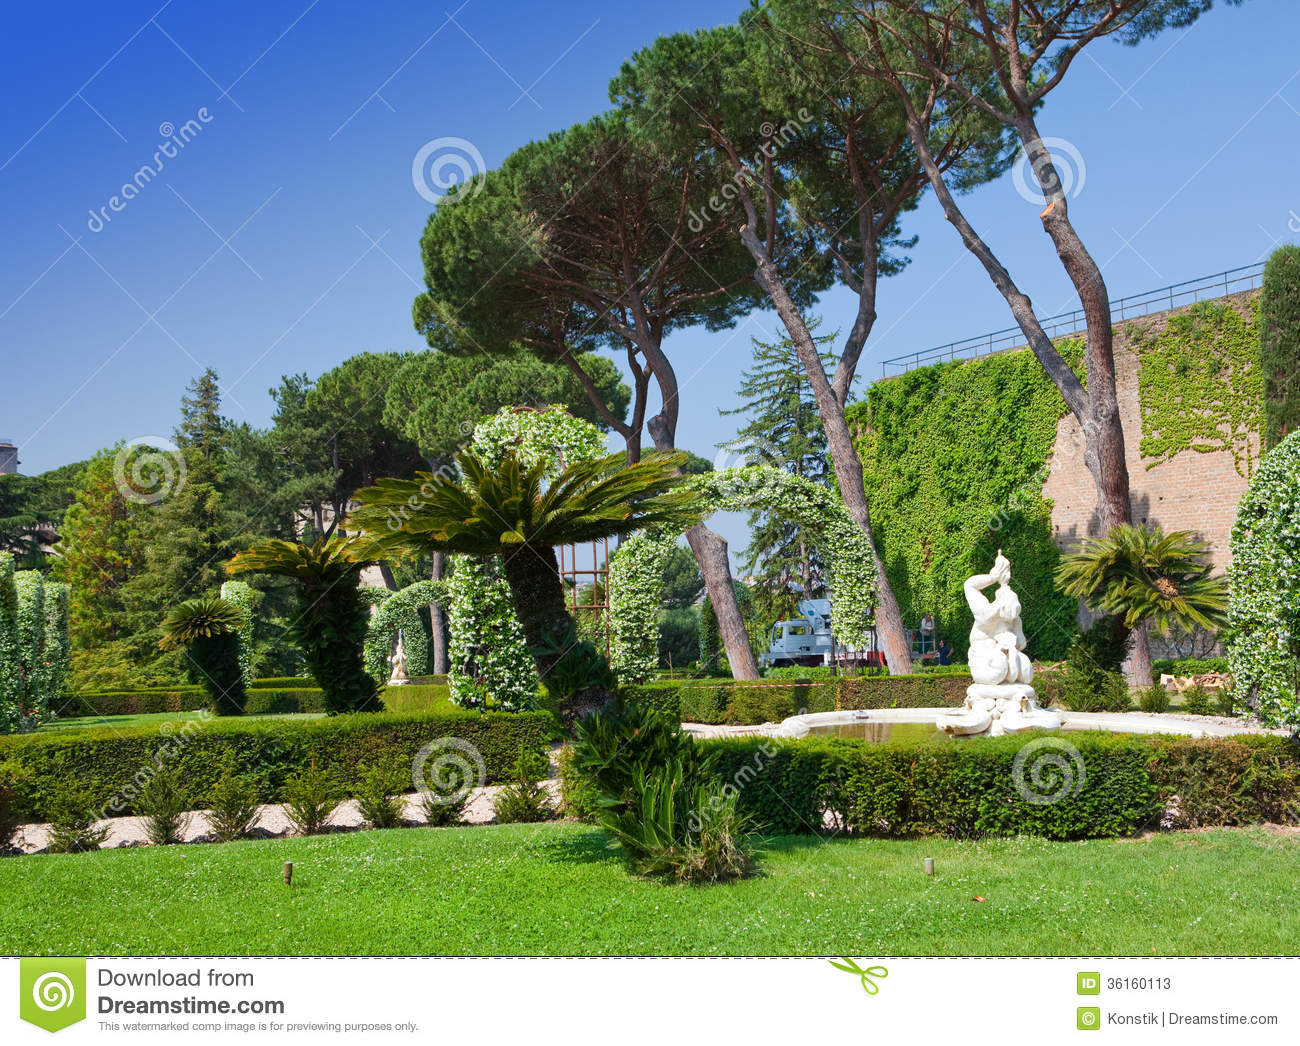 Garden in the state of Vatican in a sunny day